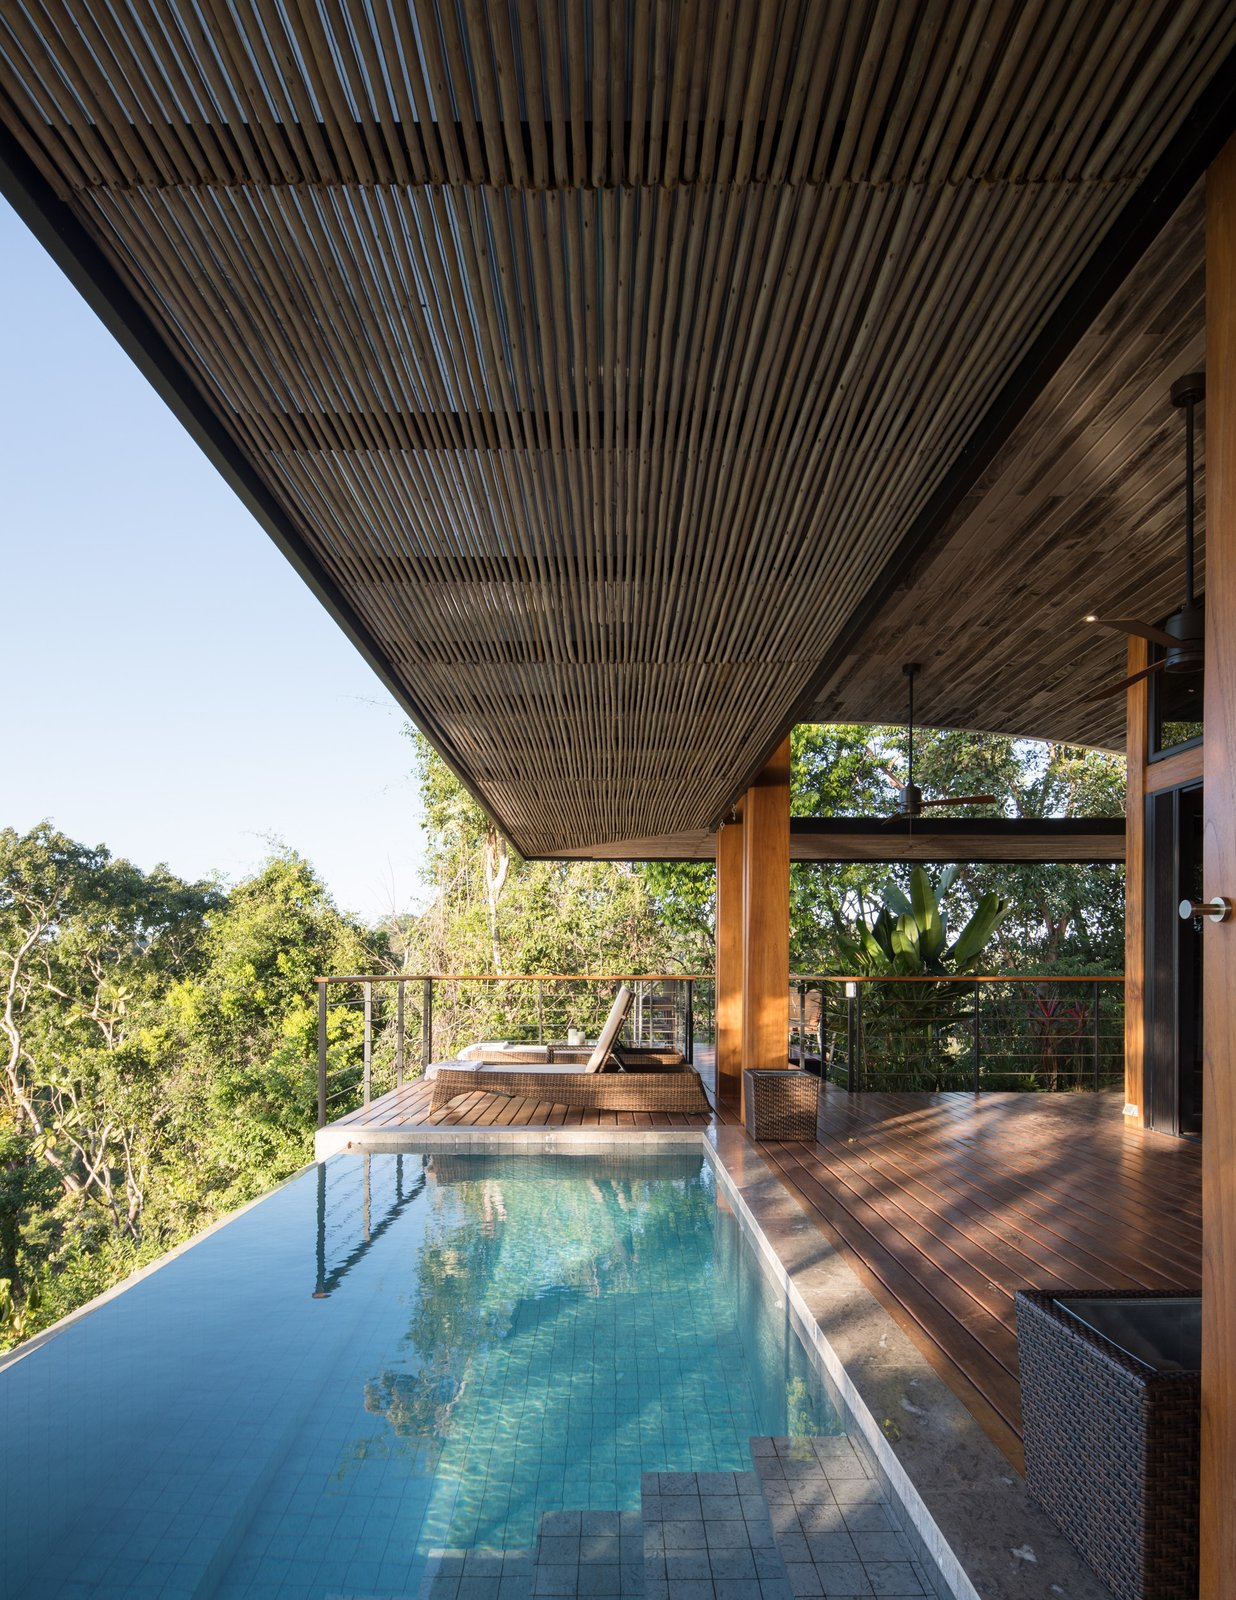 Pool and deck view